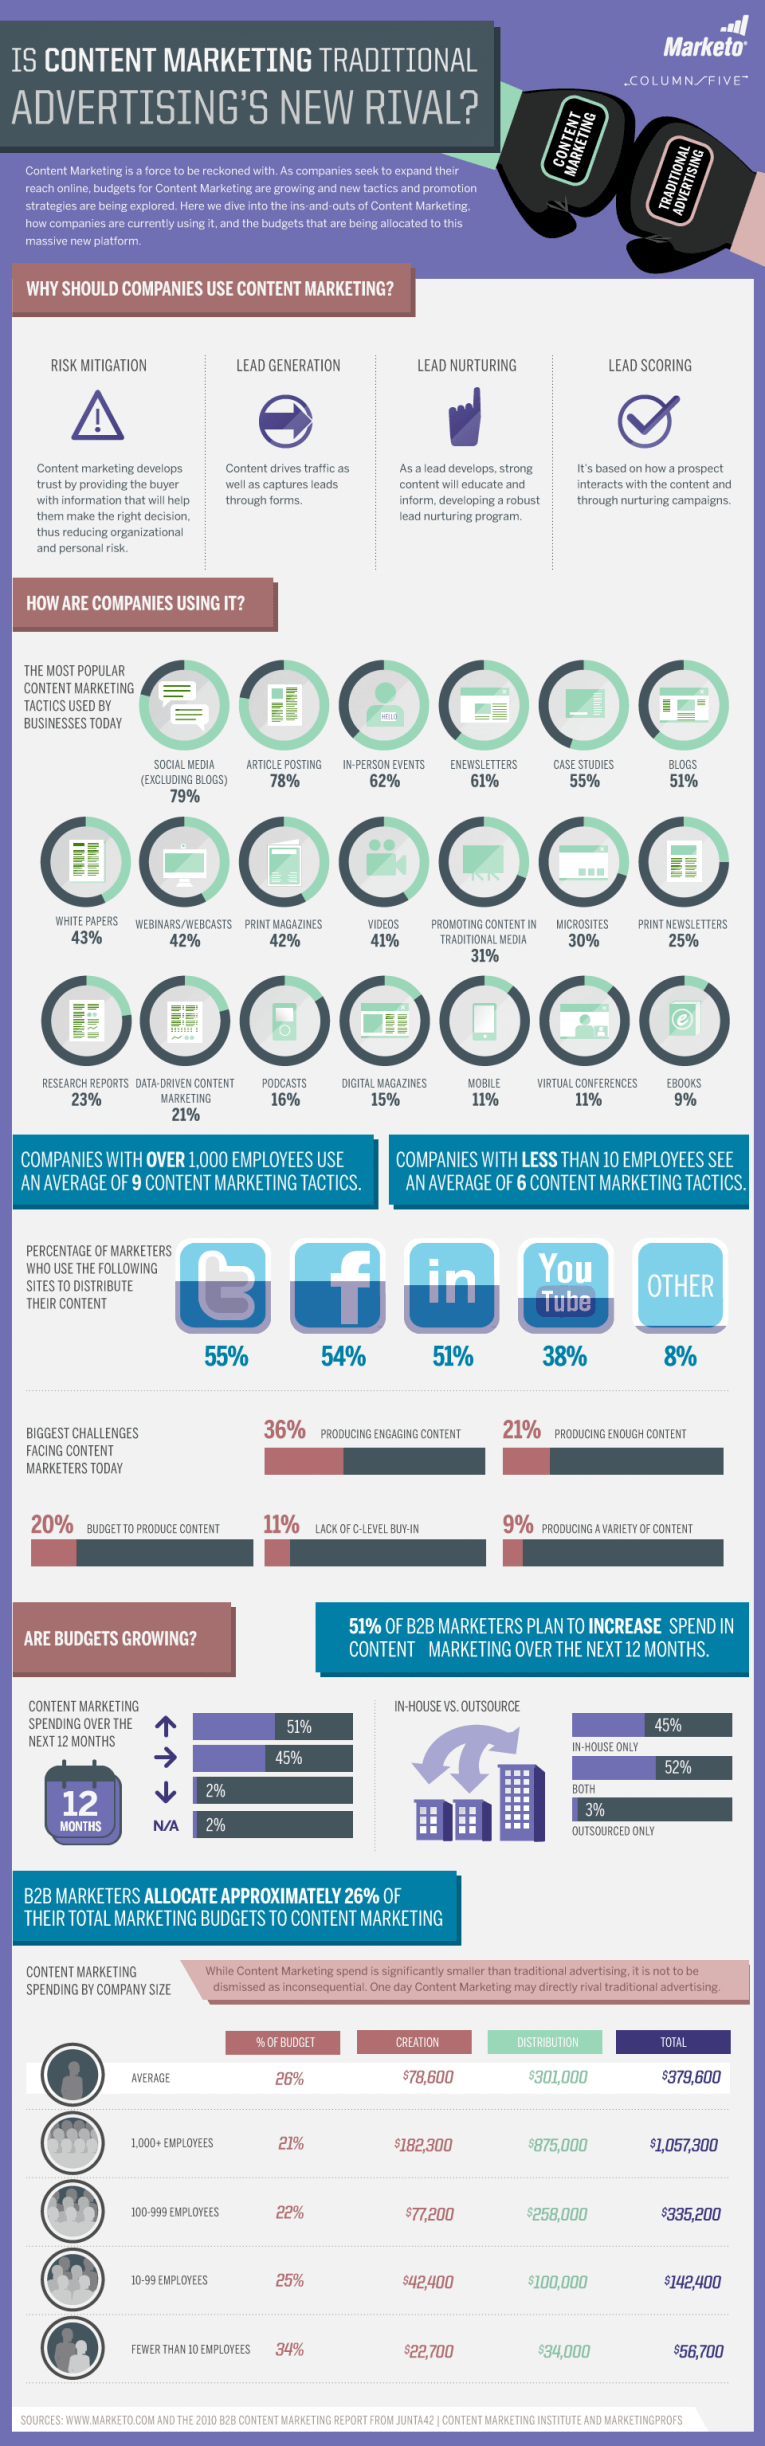 SetWidth765-Content-Marketing-Infographic-by-Marketo[1]